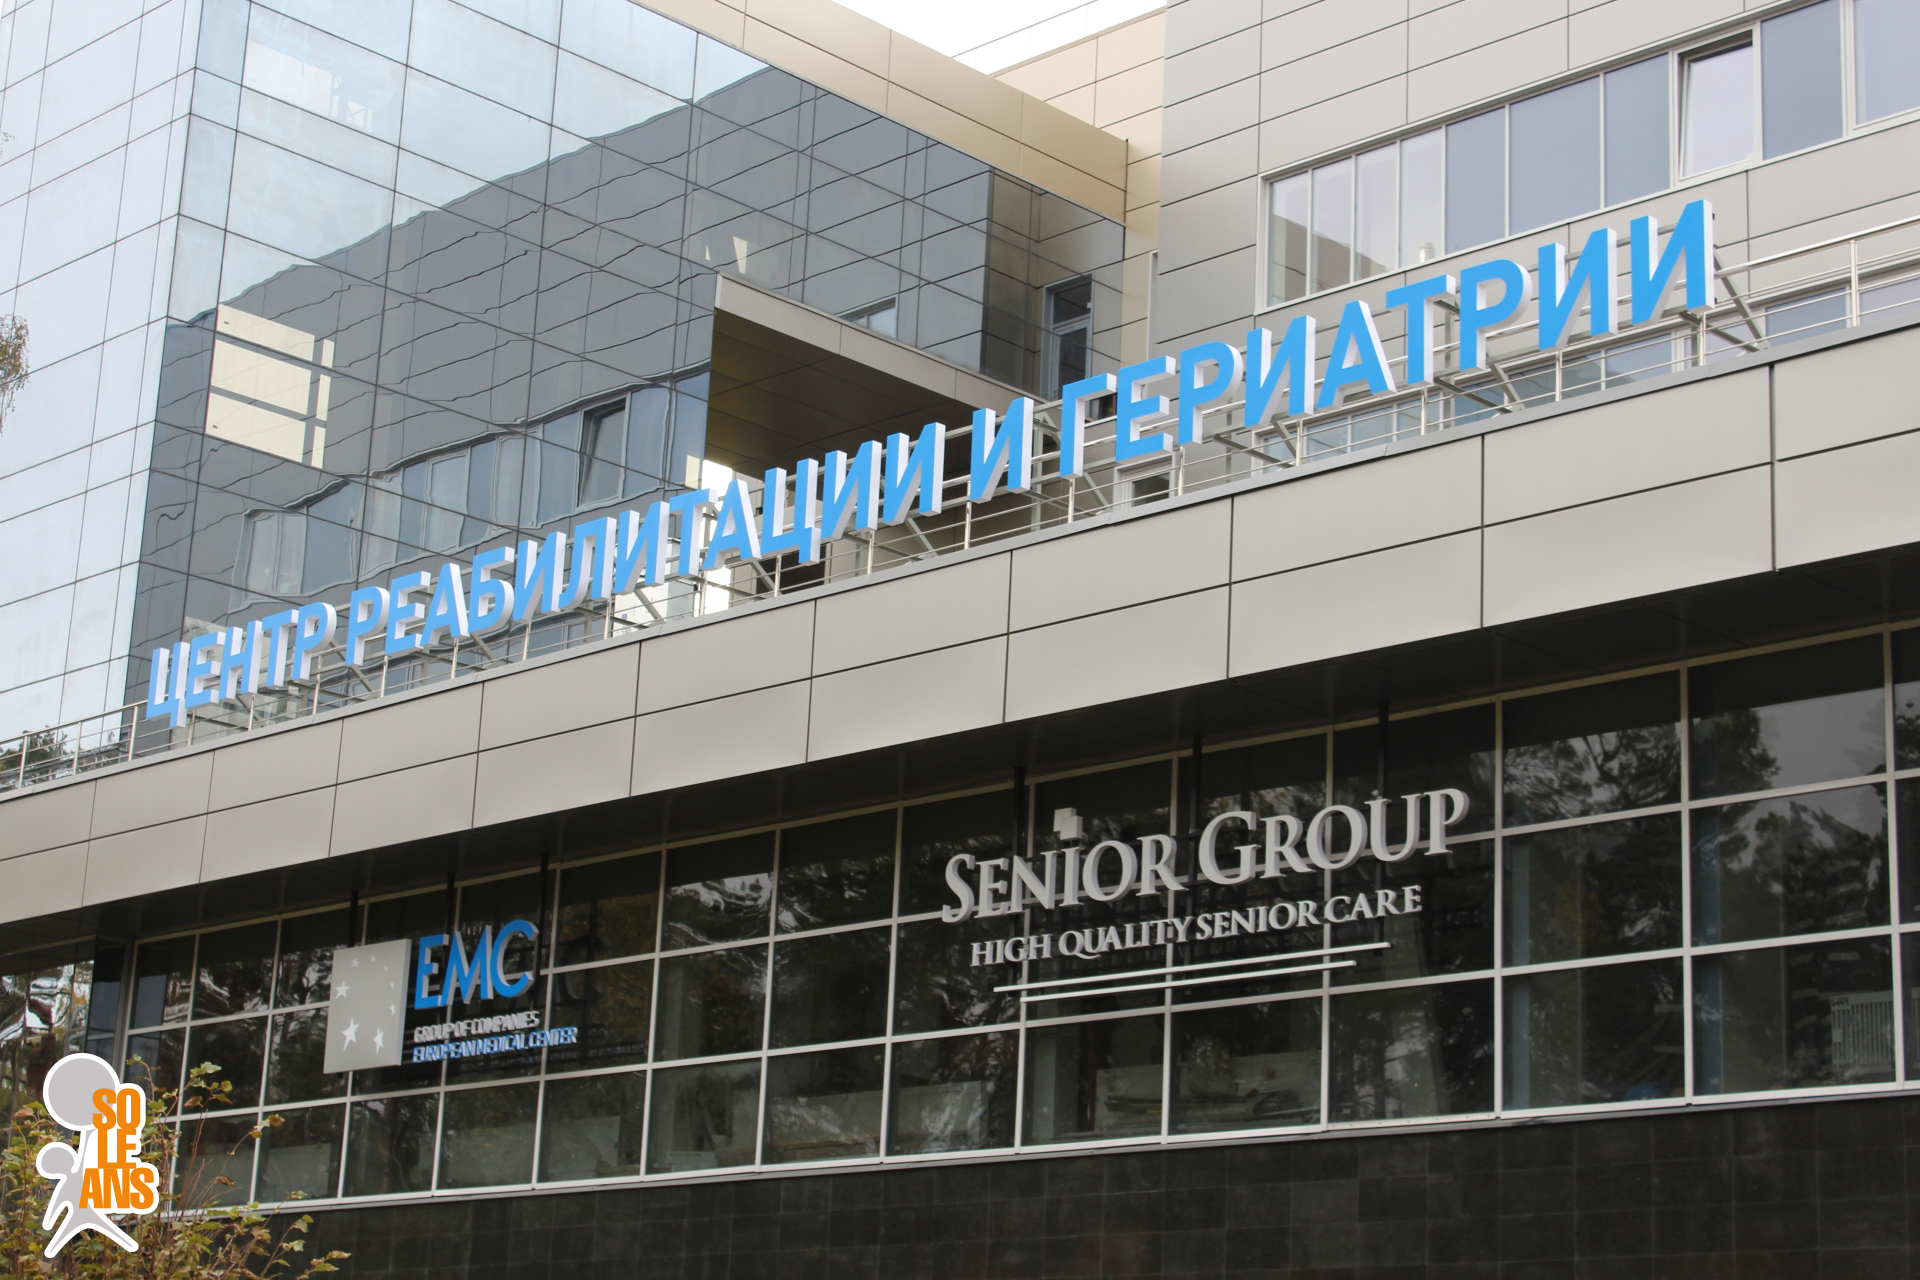 Наружная реклама для Центра Реабилитации и Гериатрии EMC, Senior Group